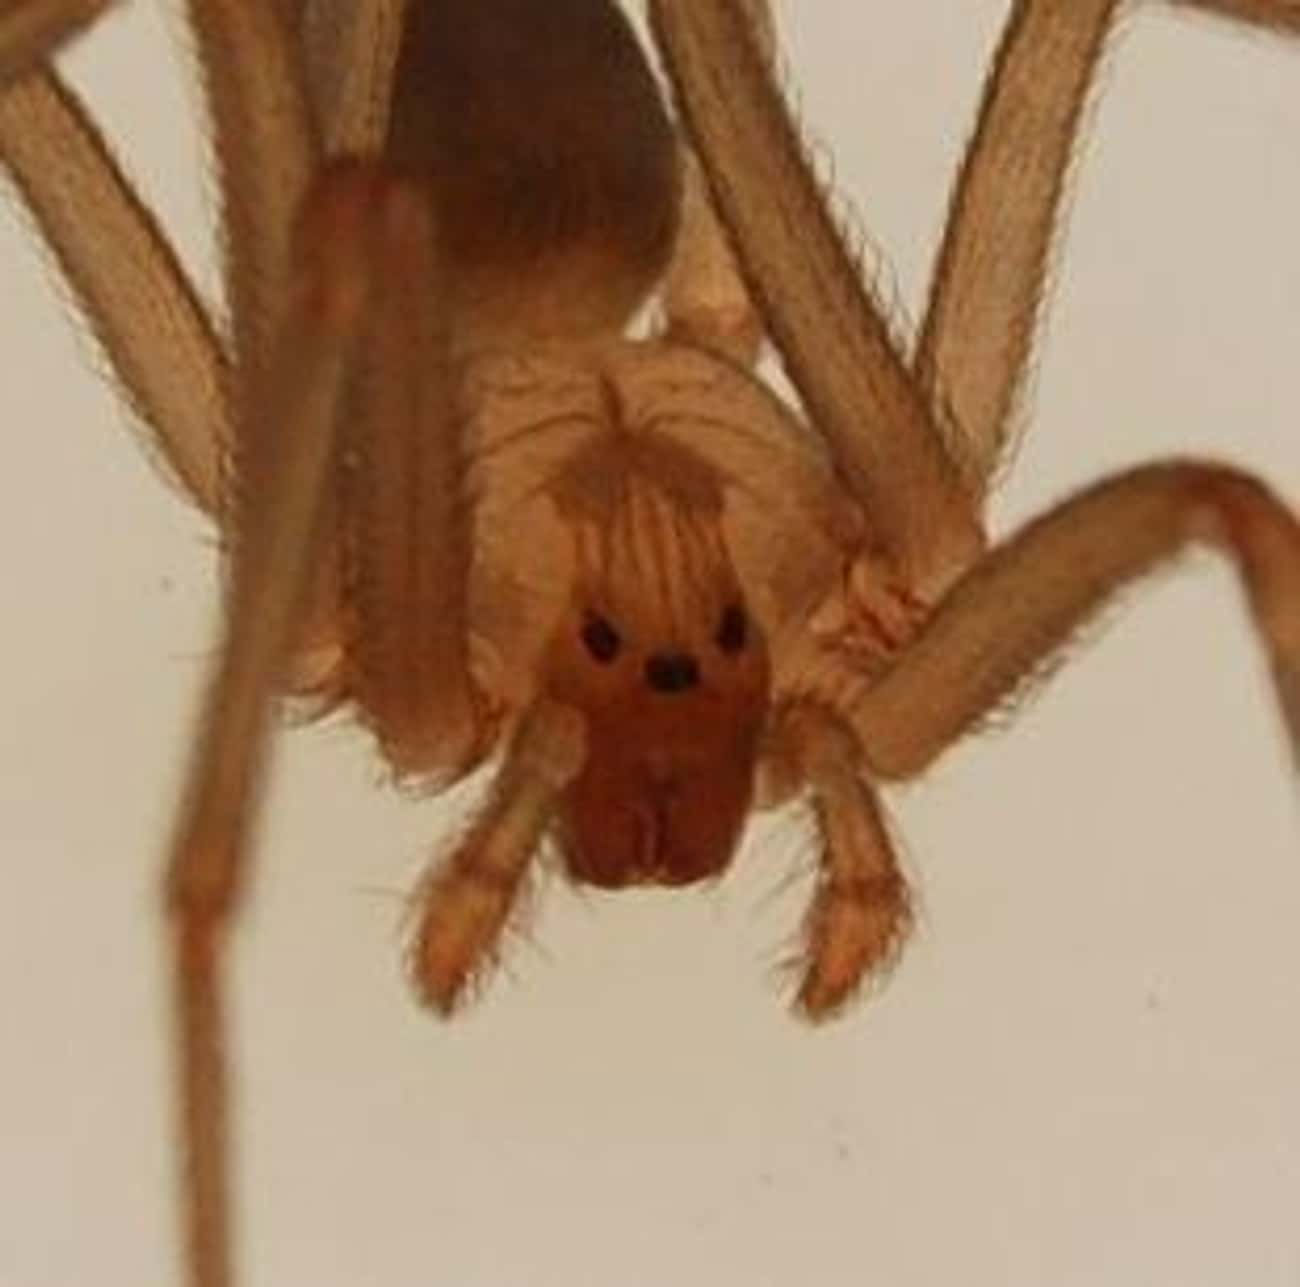 3 Pairs Of Eyes is listed (or ranked) 4 on the list The Best Pictures Of The Brown Recluse Spider